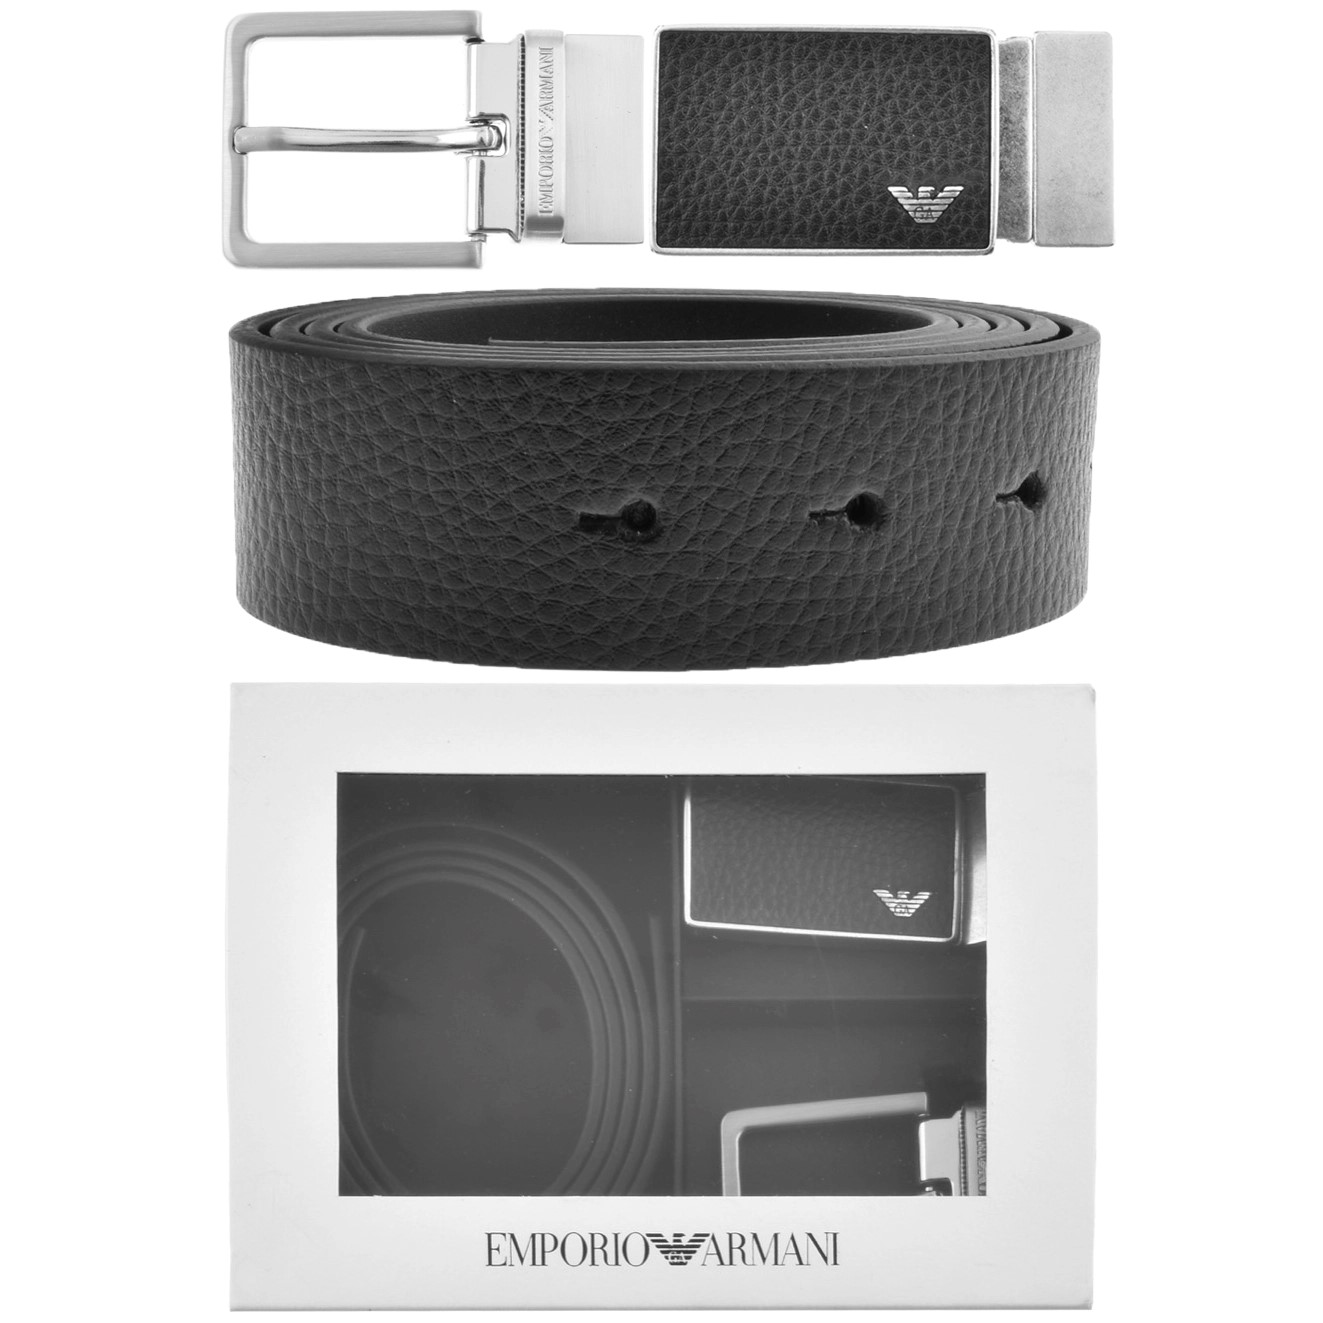 an armani belt with two buckles